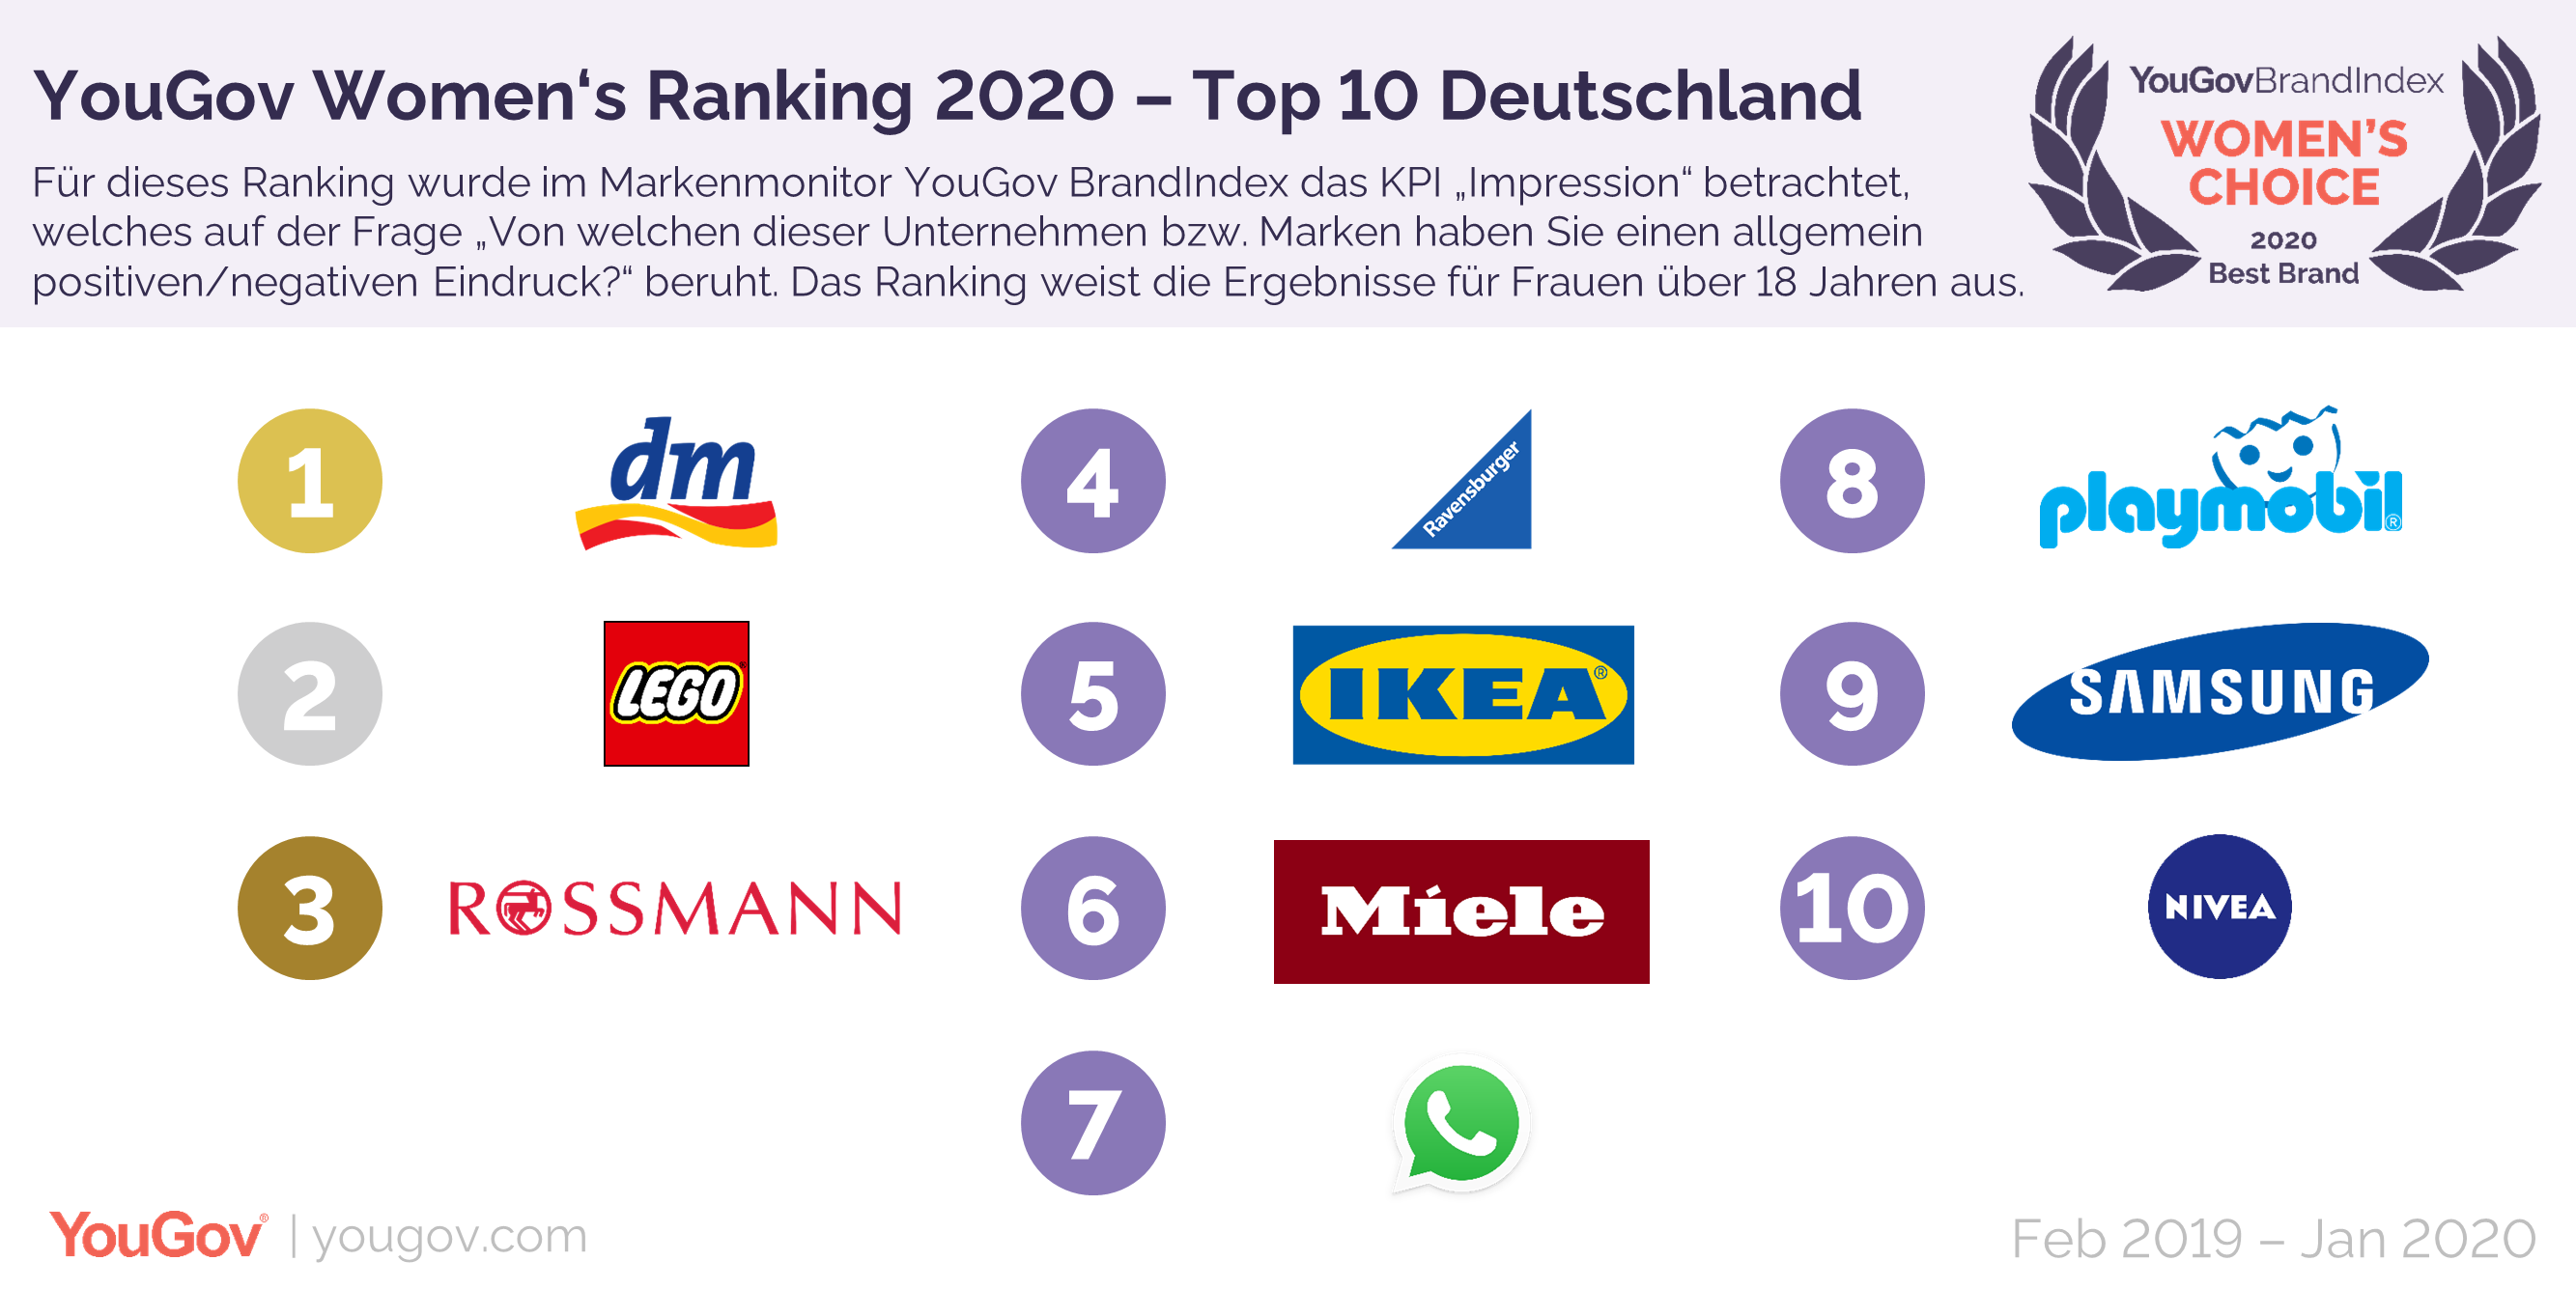 Die Top 10 Marken des Women's Ranking 2020